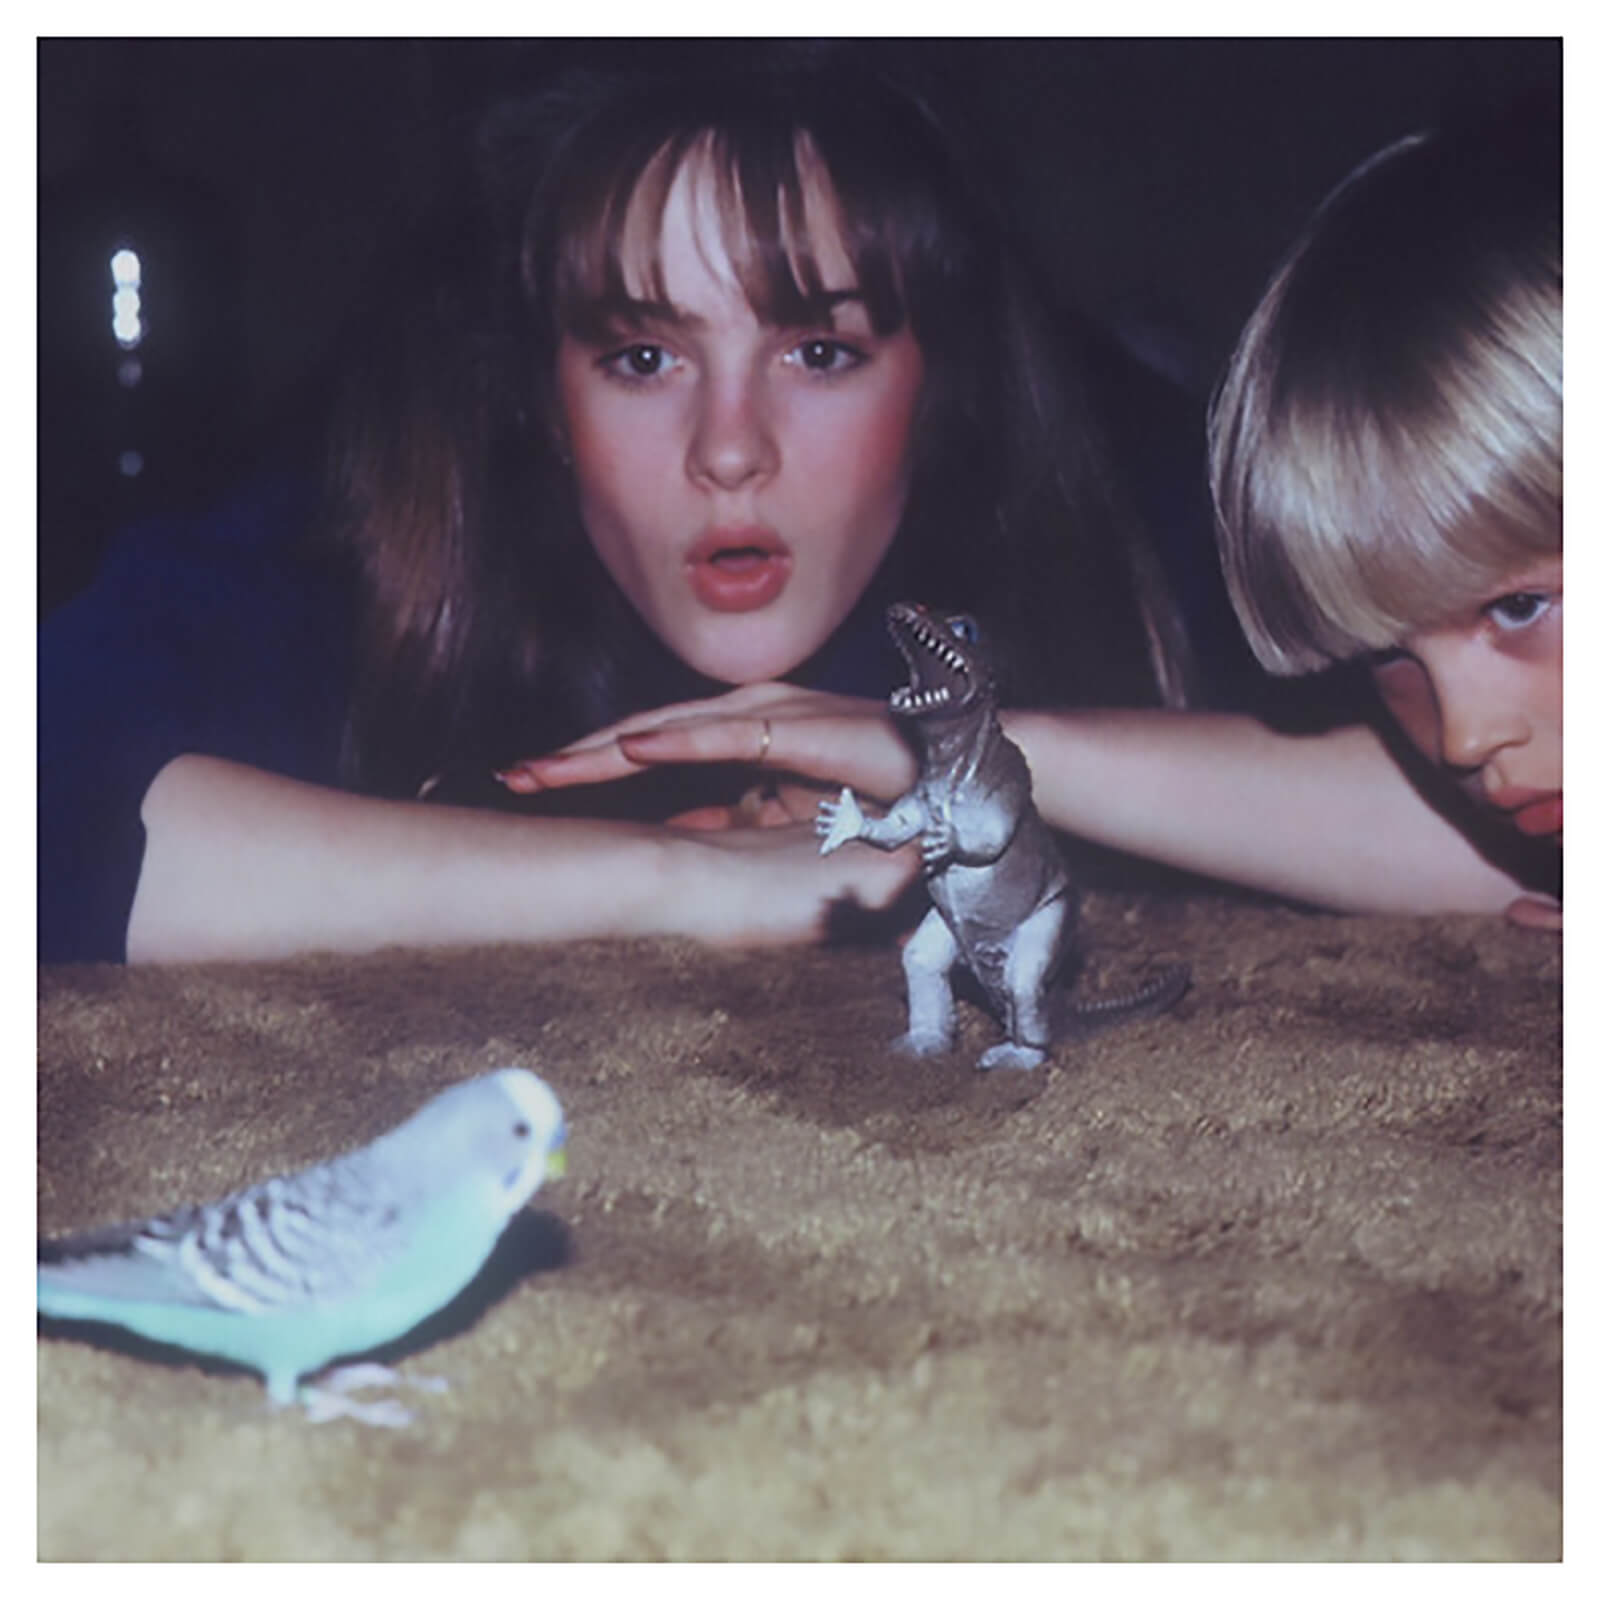 Big Thief - Masterpiece - Vinyl